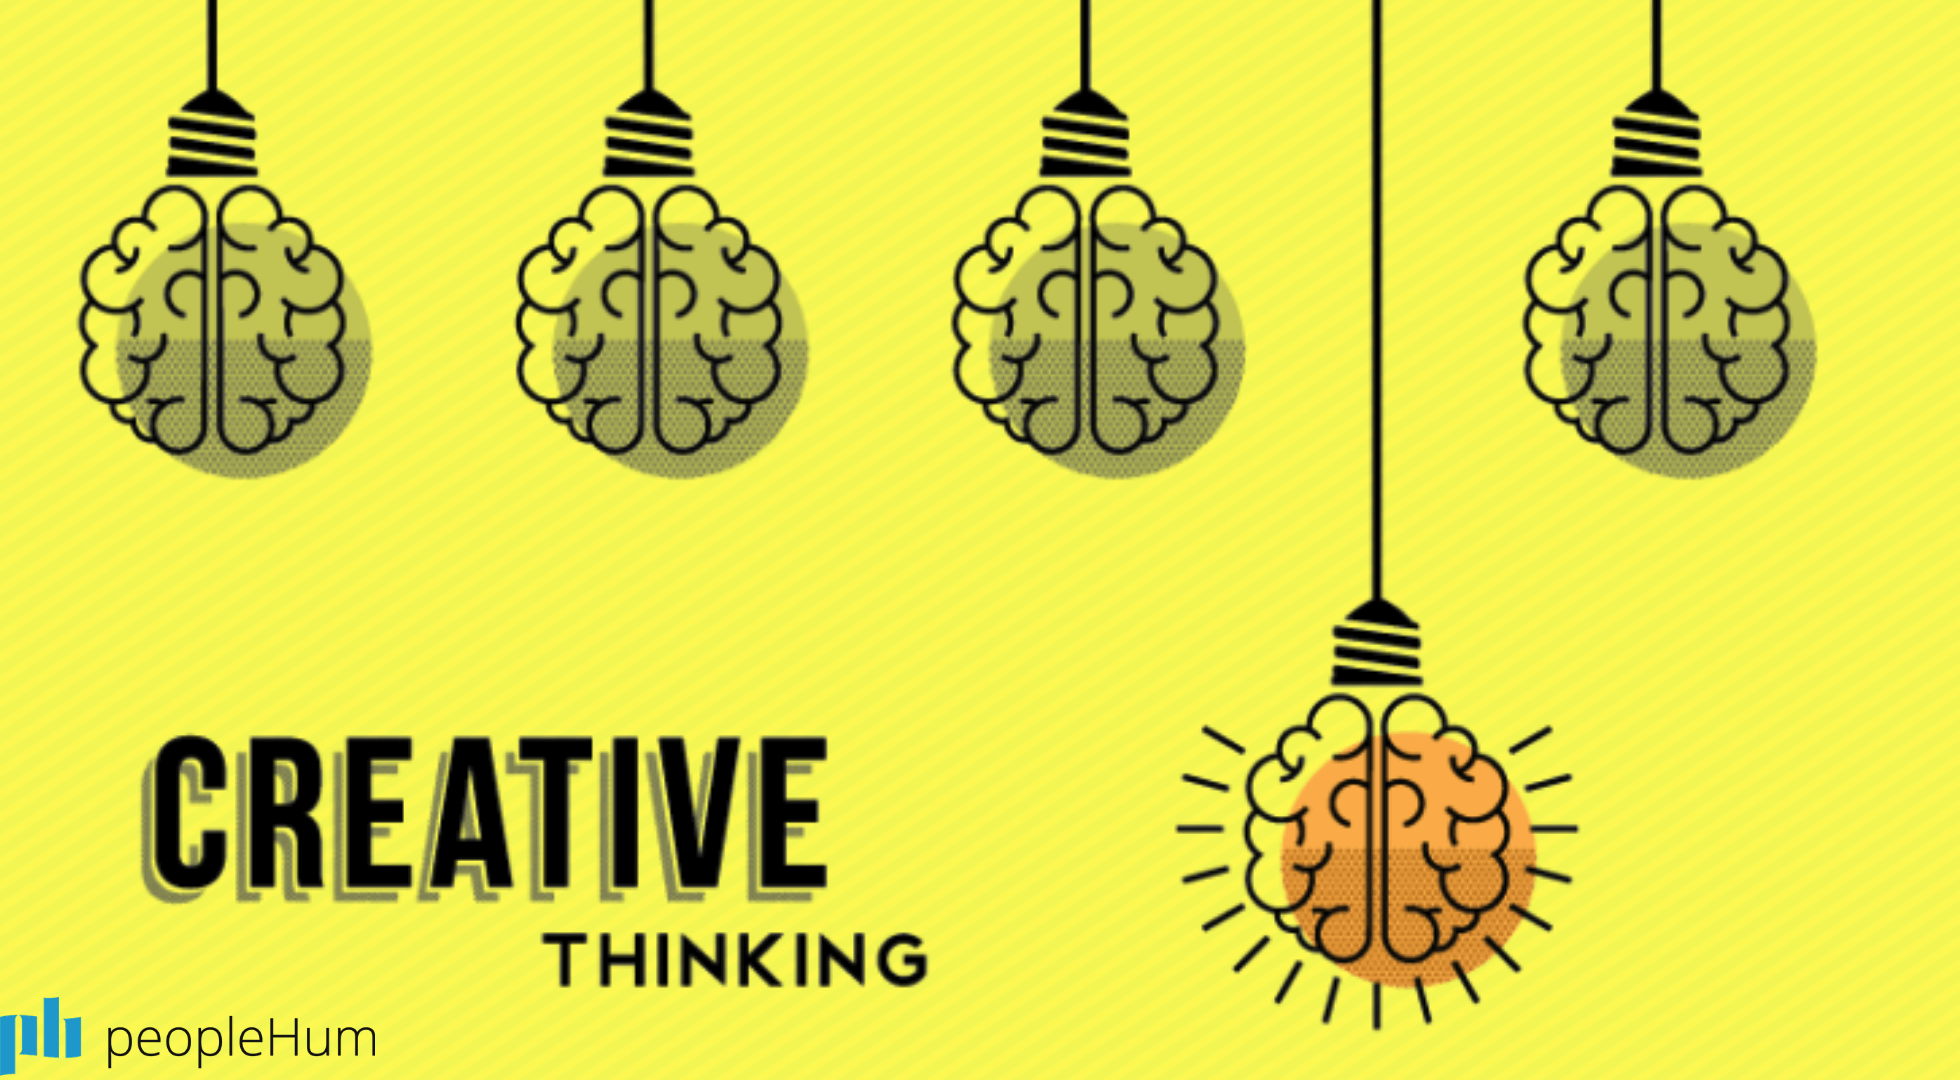 Got creative thinking? - If not you're missing out!